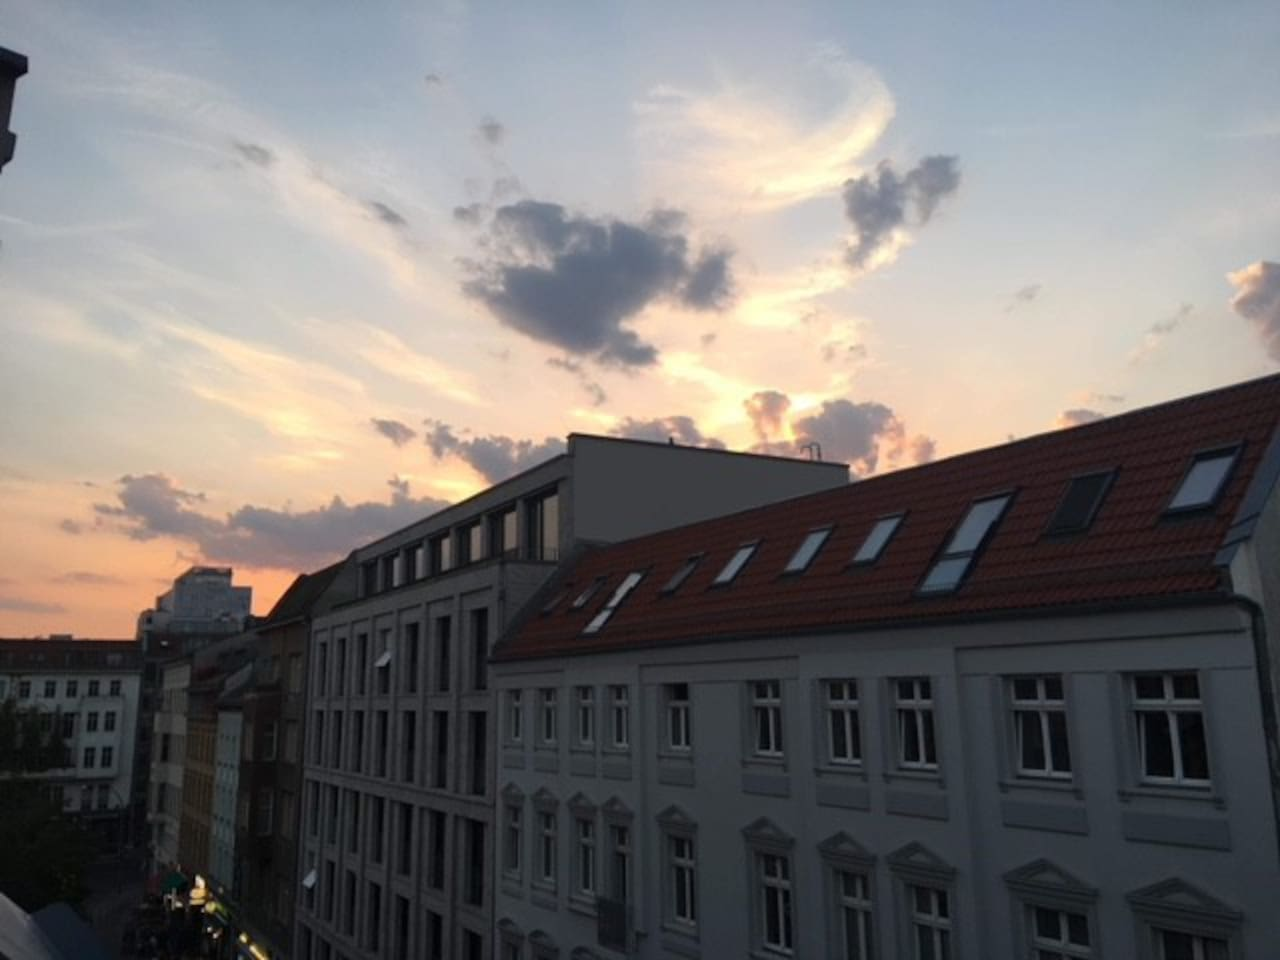 views over the rooftops on linienstrasse